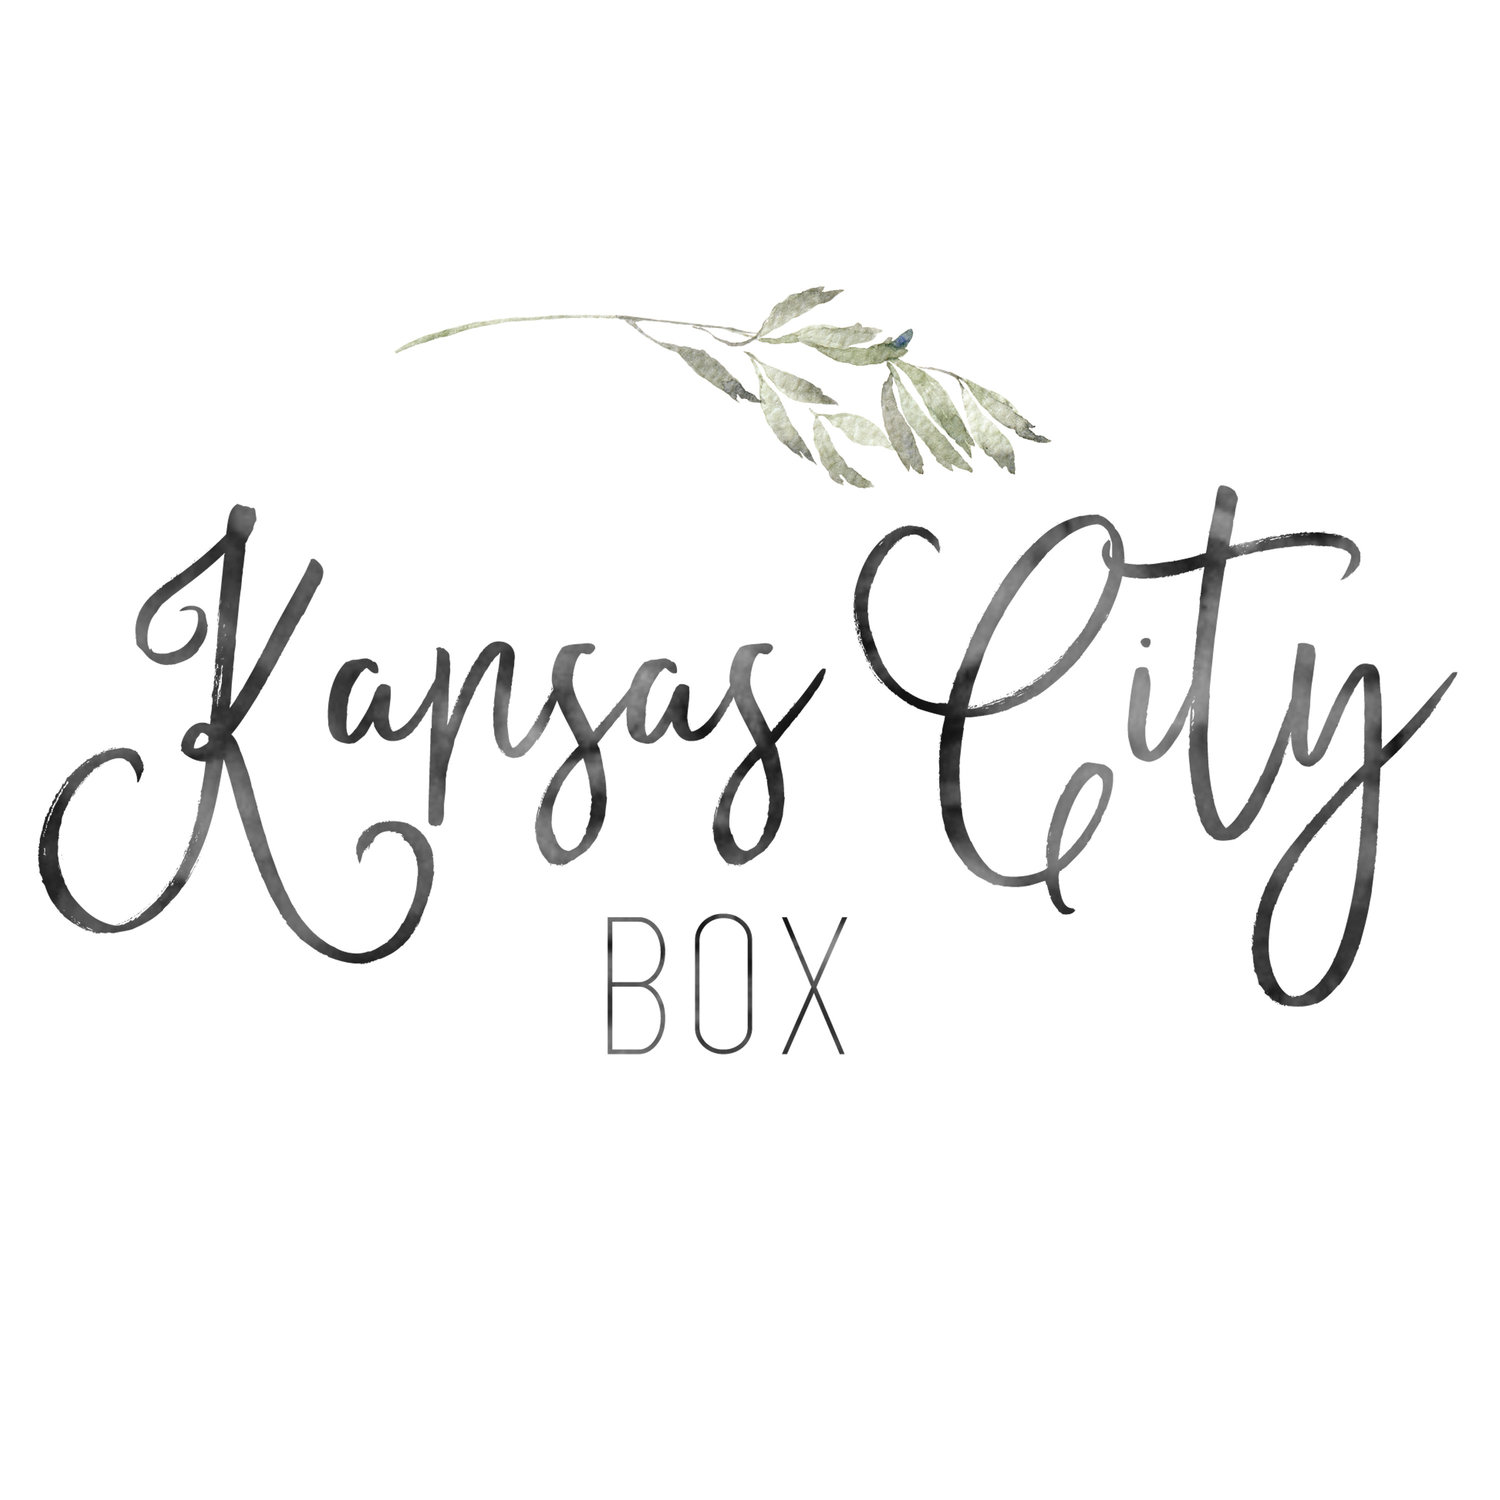 The Kansas City Box